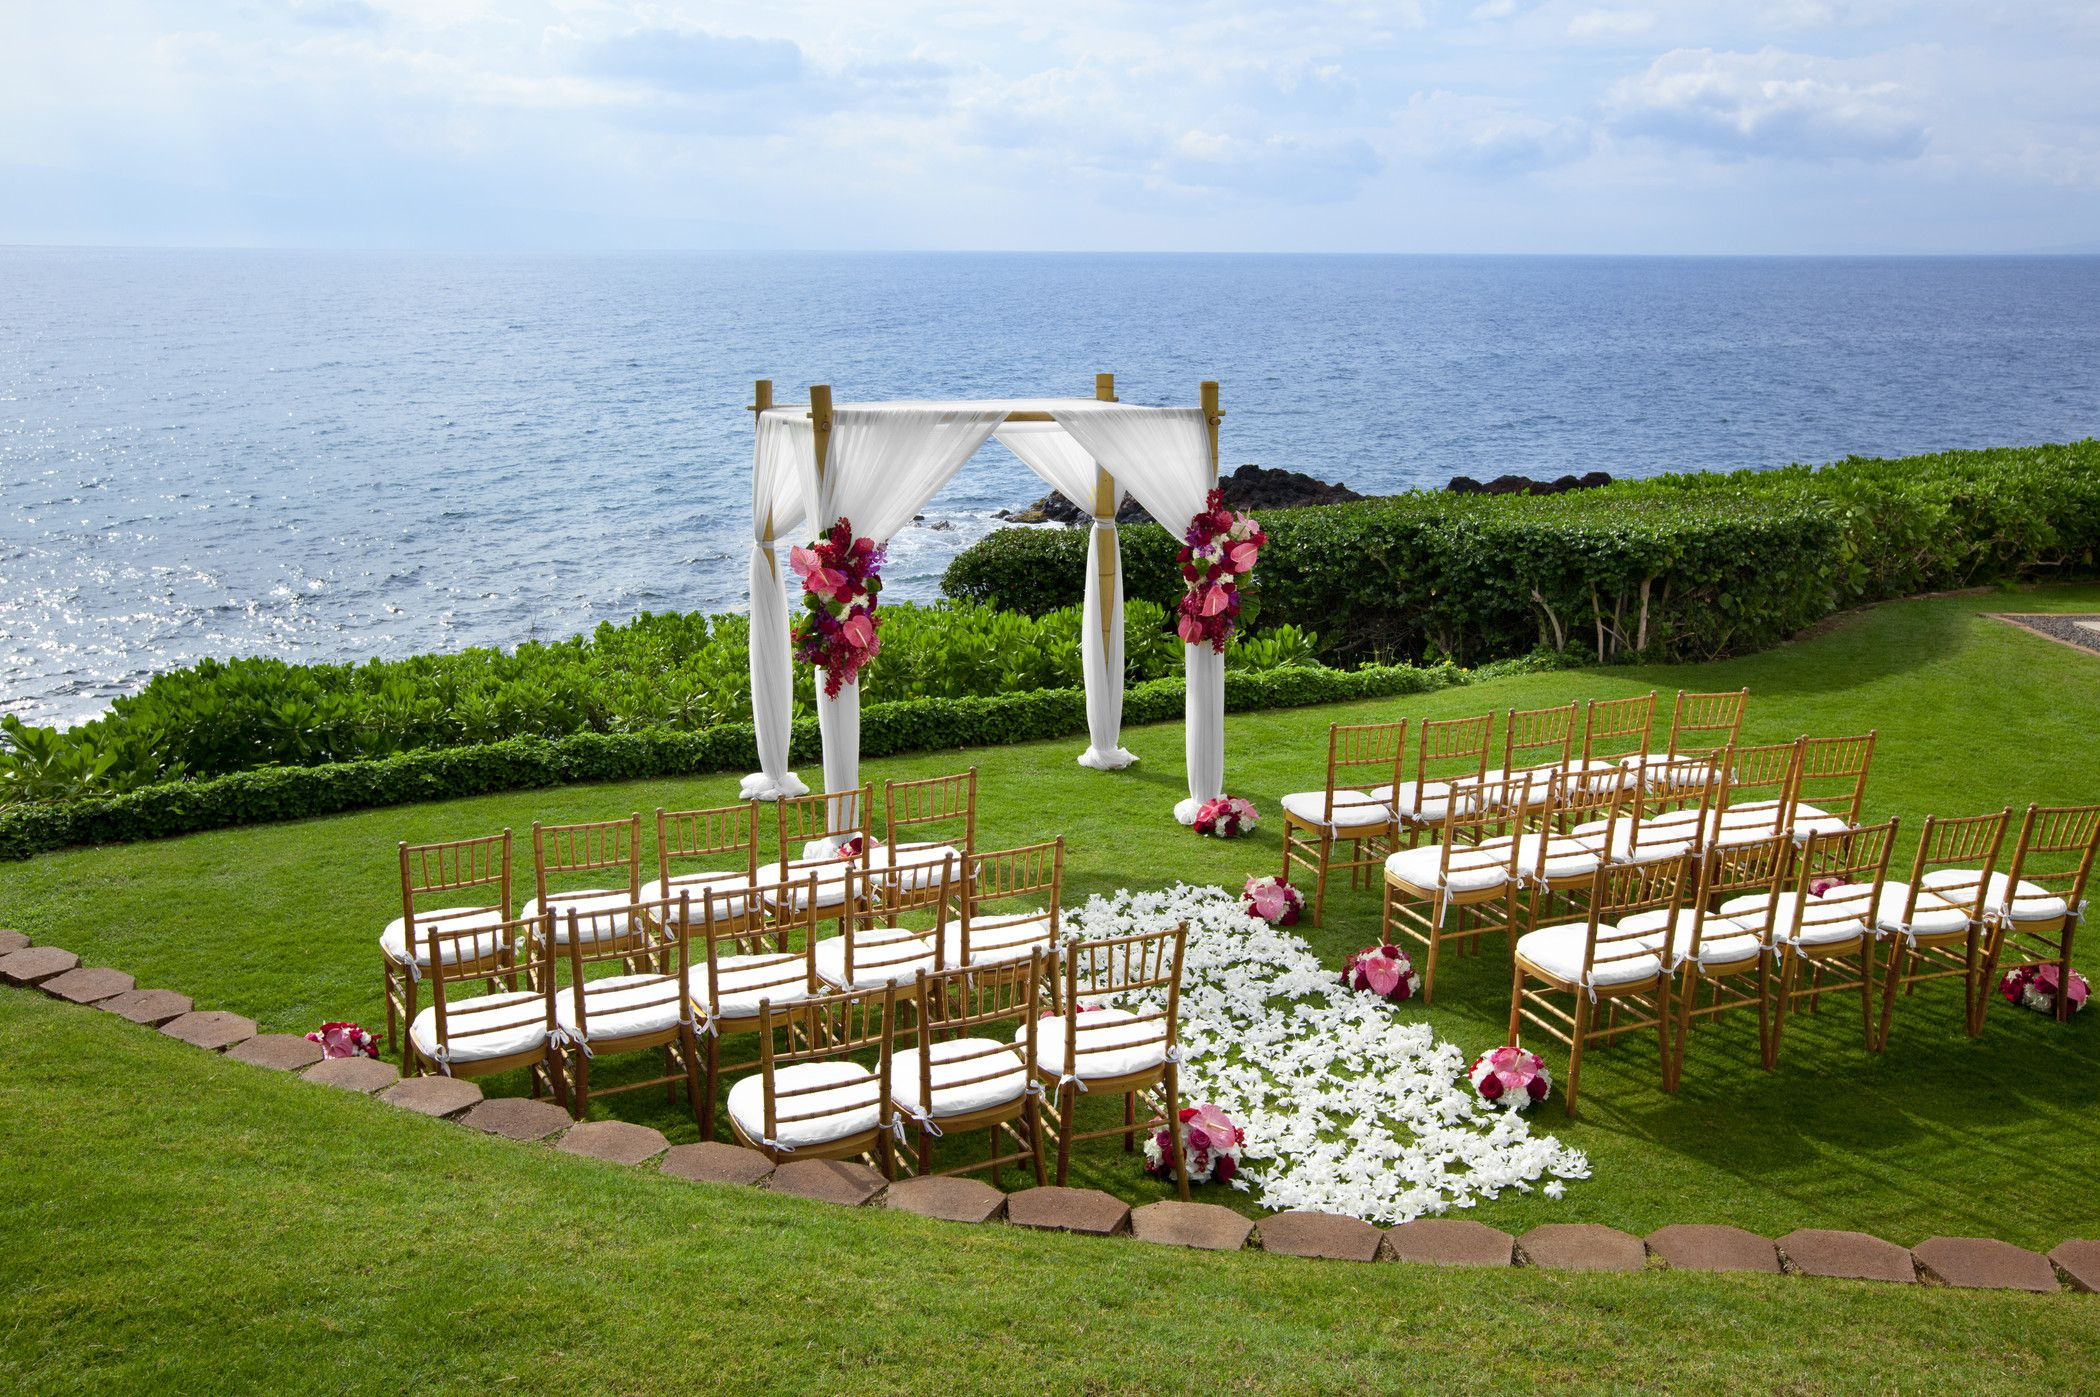 Gorgeous venue at the sheraton maui resort spa hawaii maui gorgeous venue at the sheraton maui resort spa hawaii maui destinationwedding junglespirit Choice Image